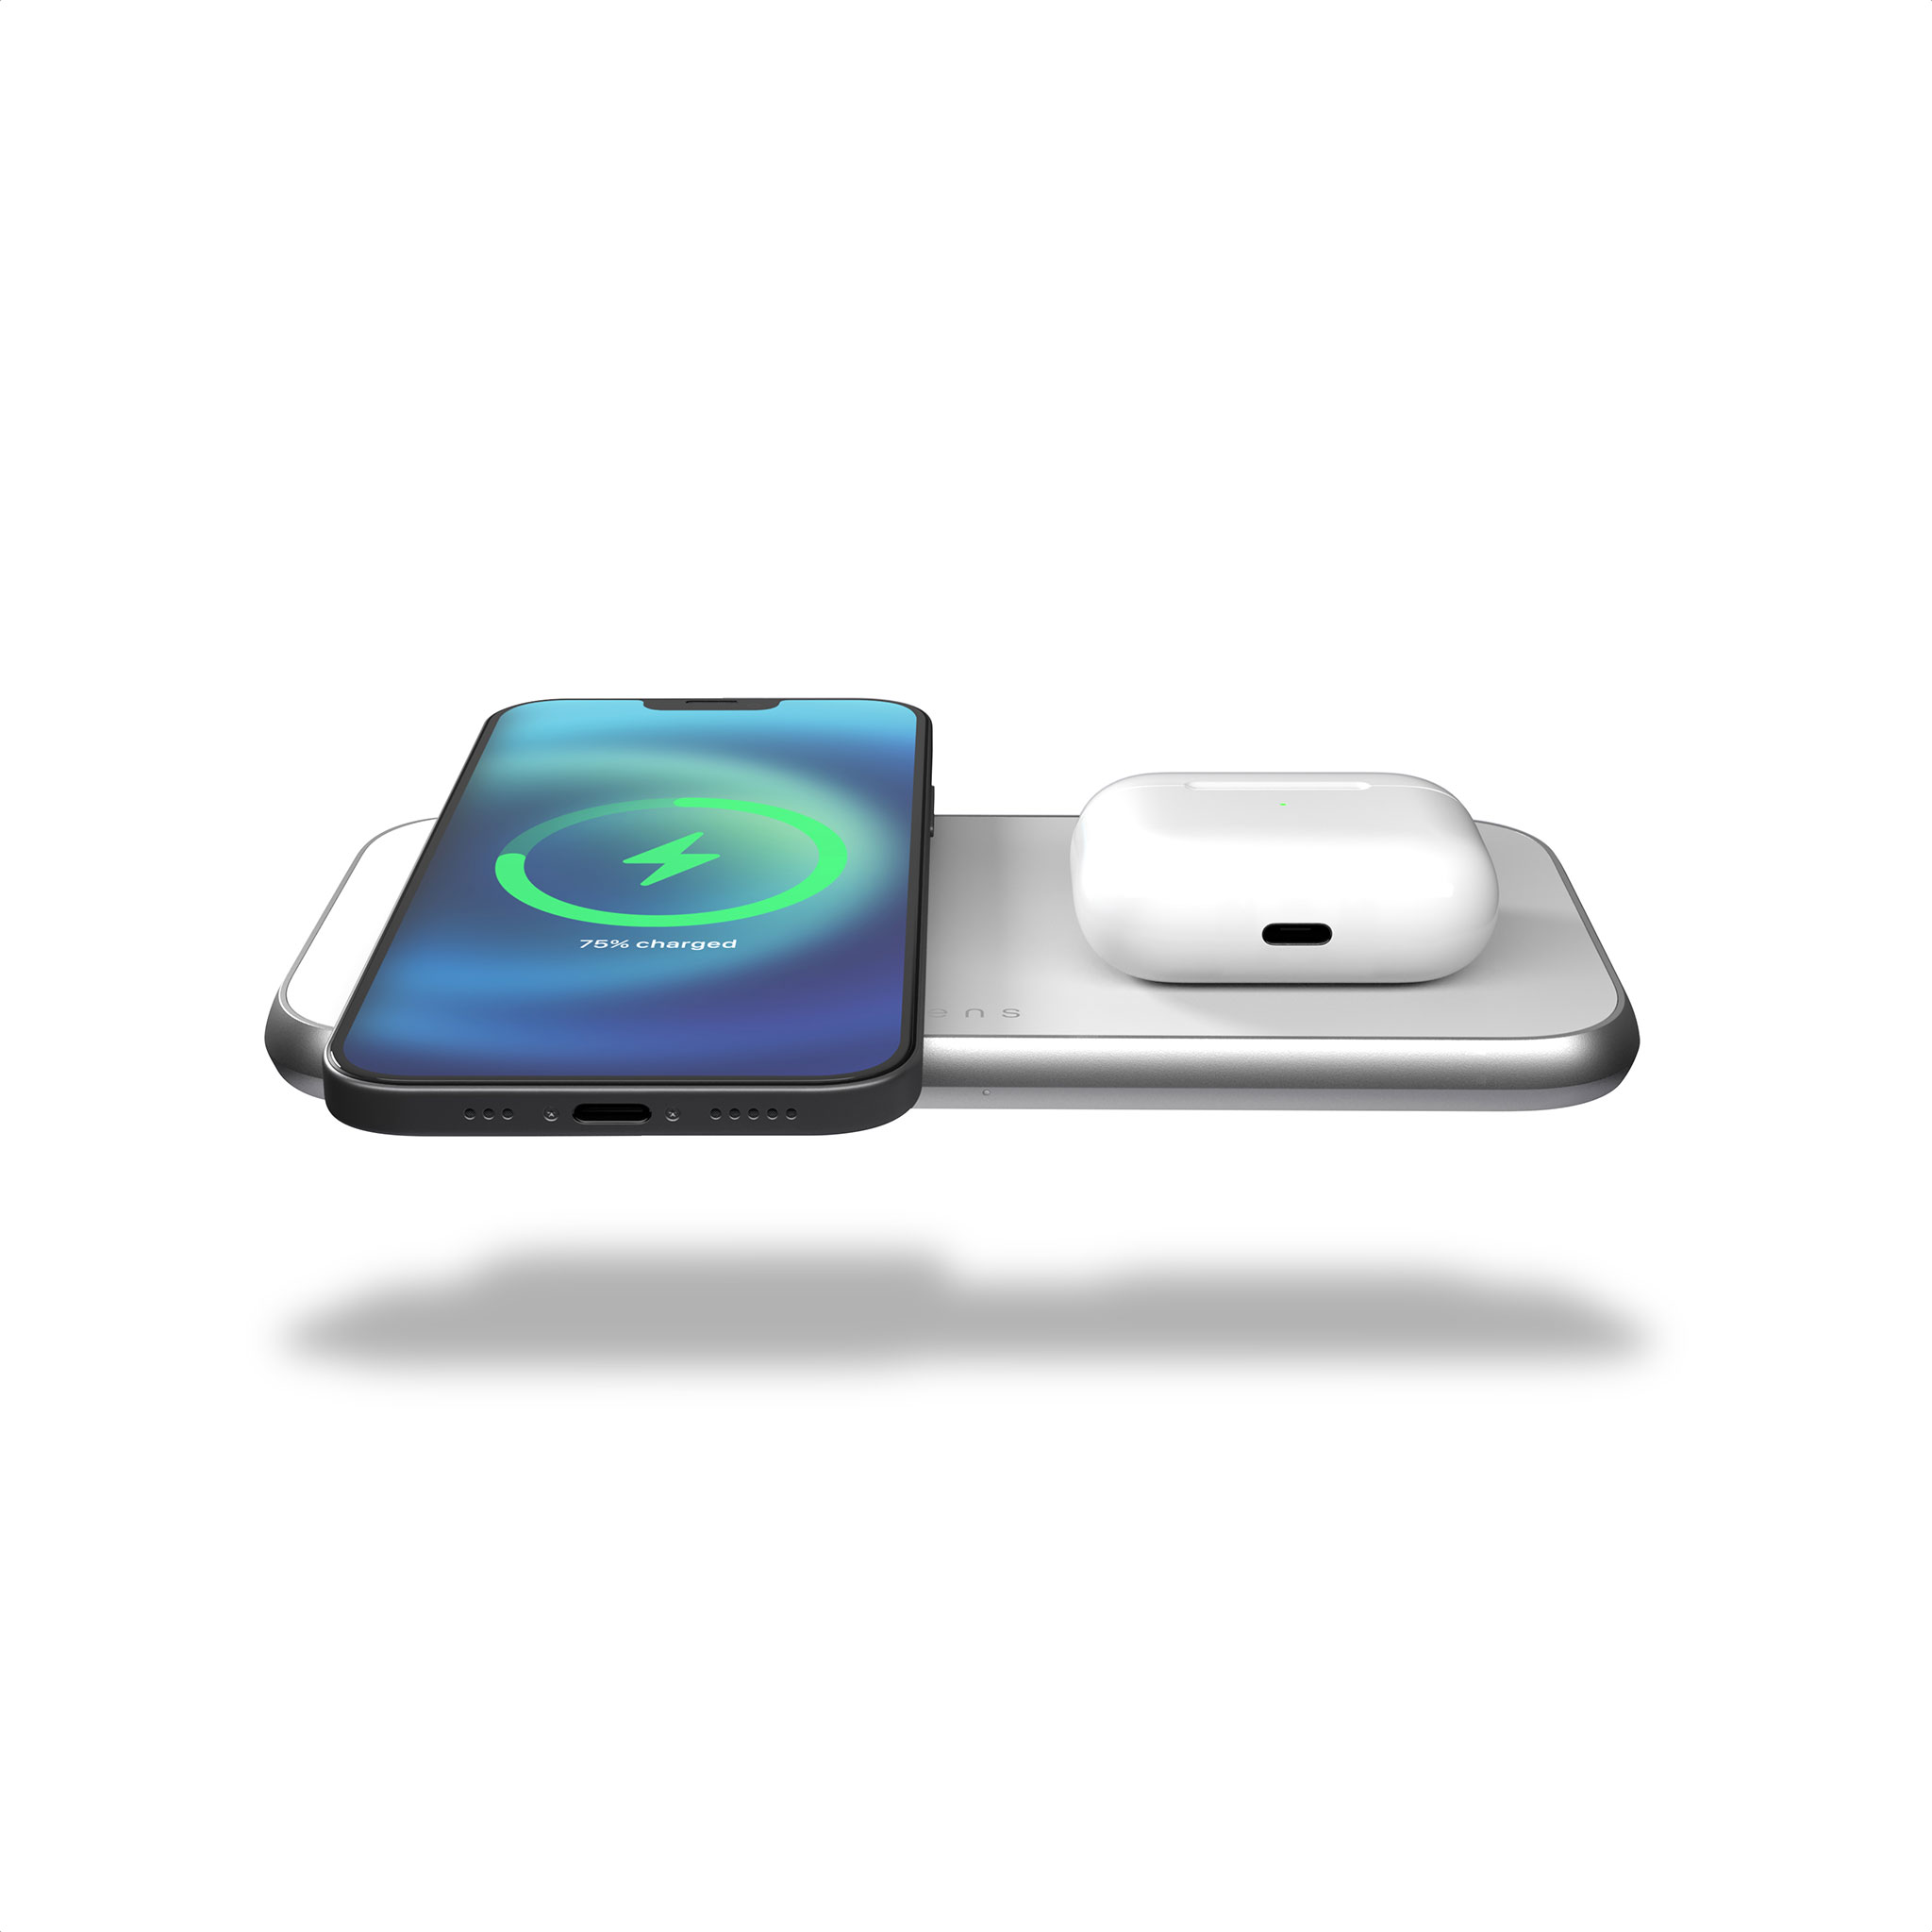 ZEDC16W - Zens 3 in 1 MagSafe Wireless Charger Front Top View with devices